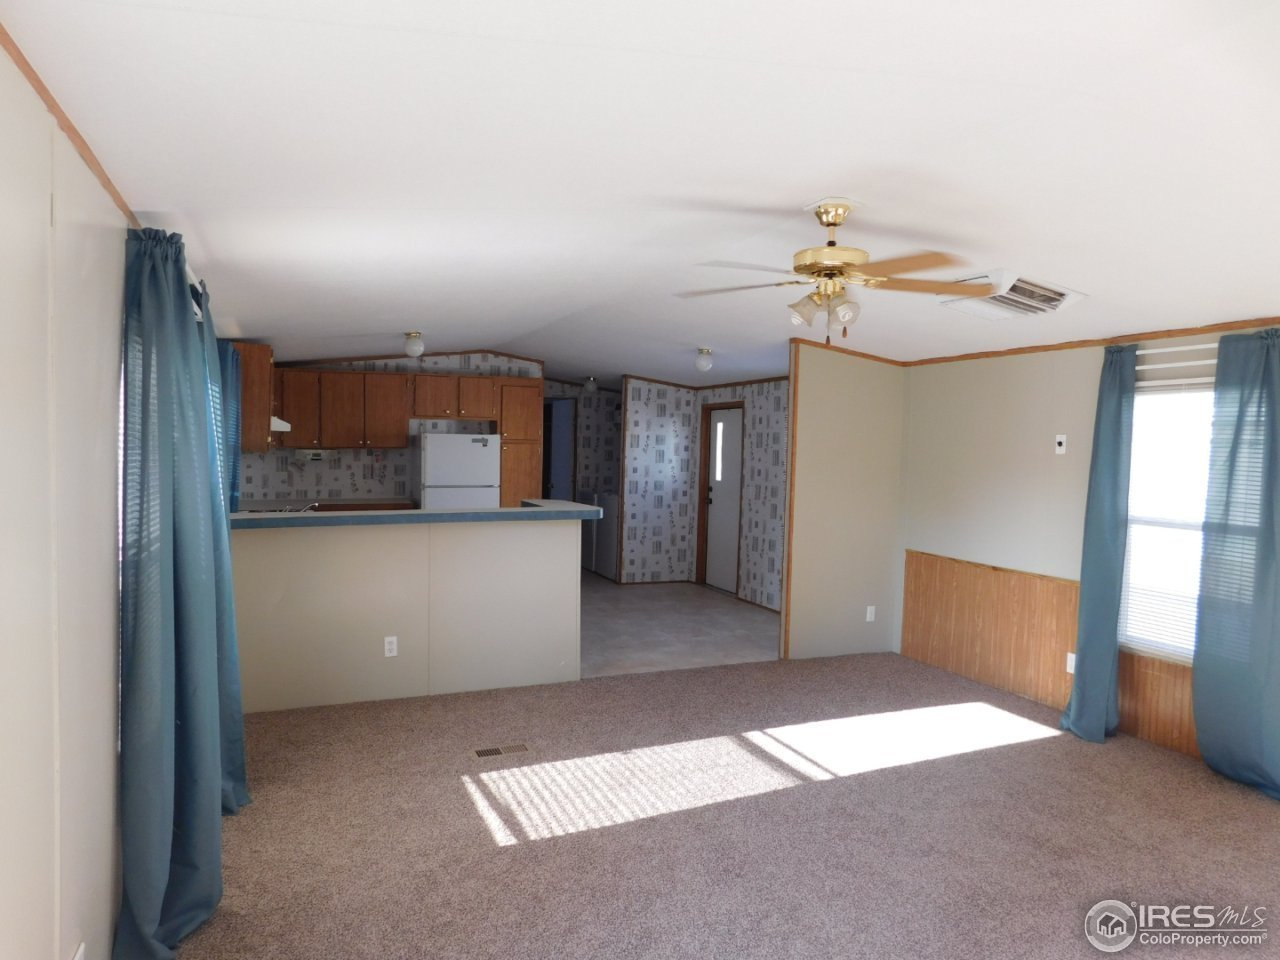 200 n 35th ave #93, greeley, co 80634 | mls# 3479 | redfin